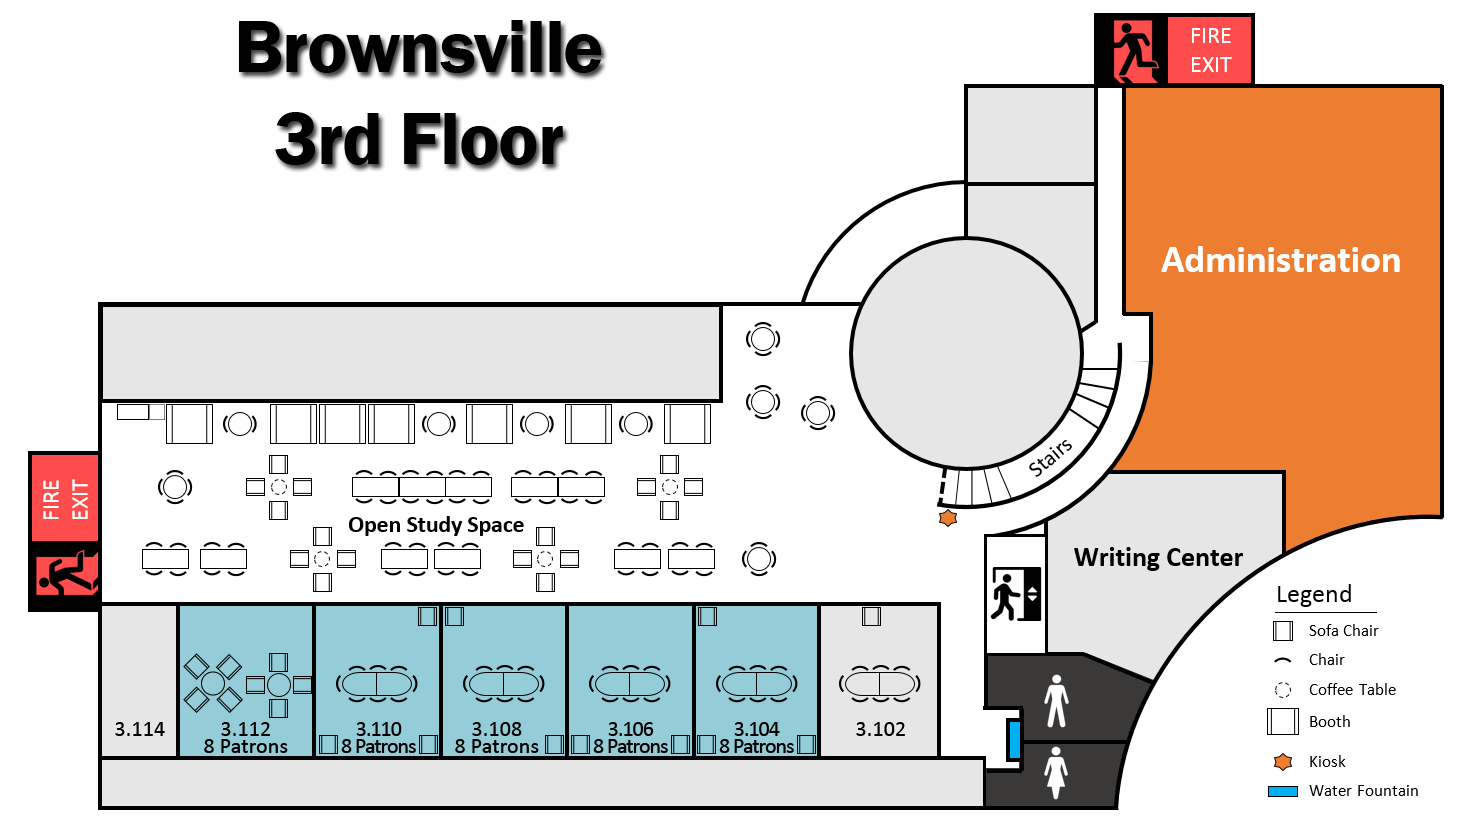 Brownsville Campus 3rd Floor Layout